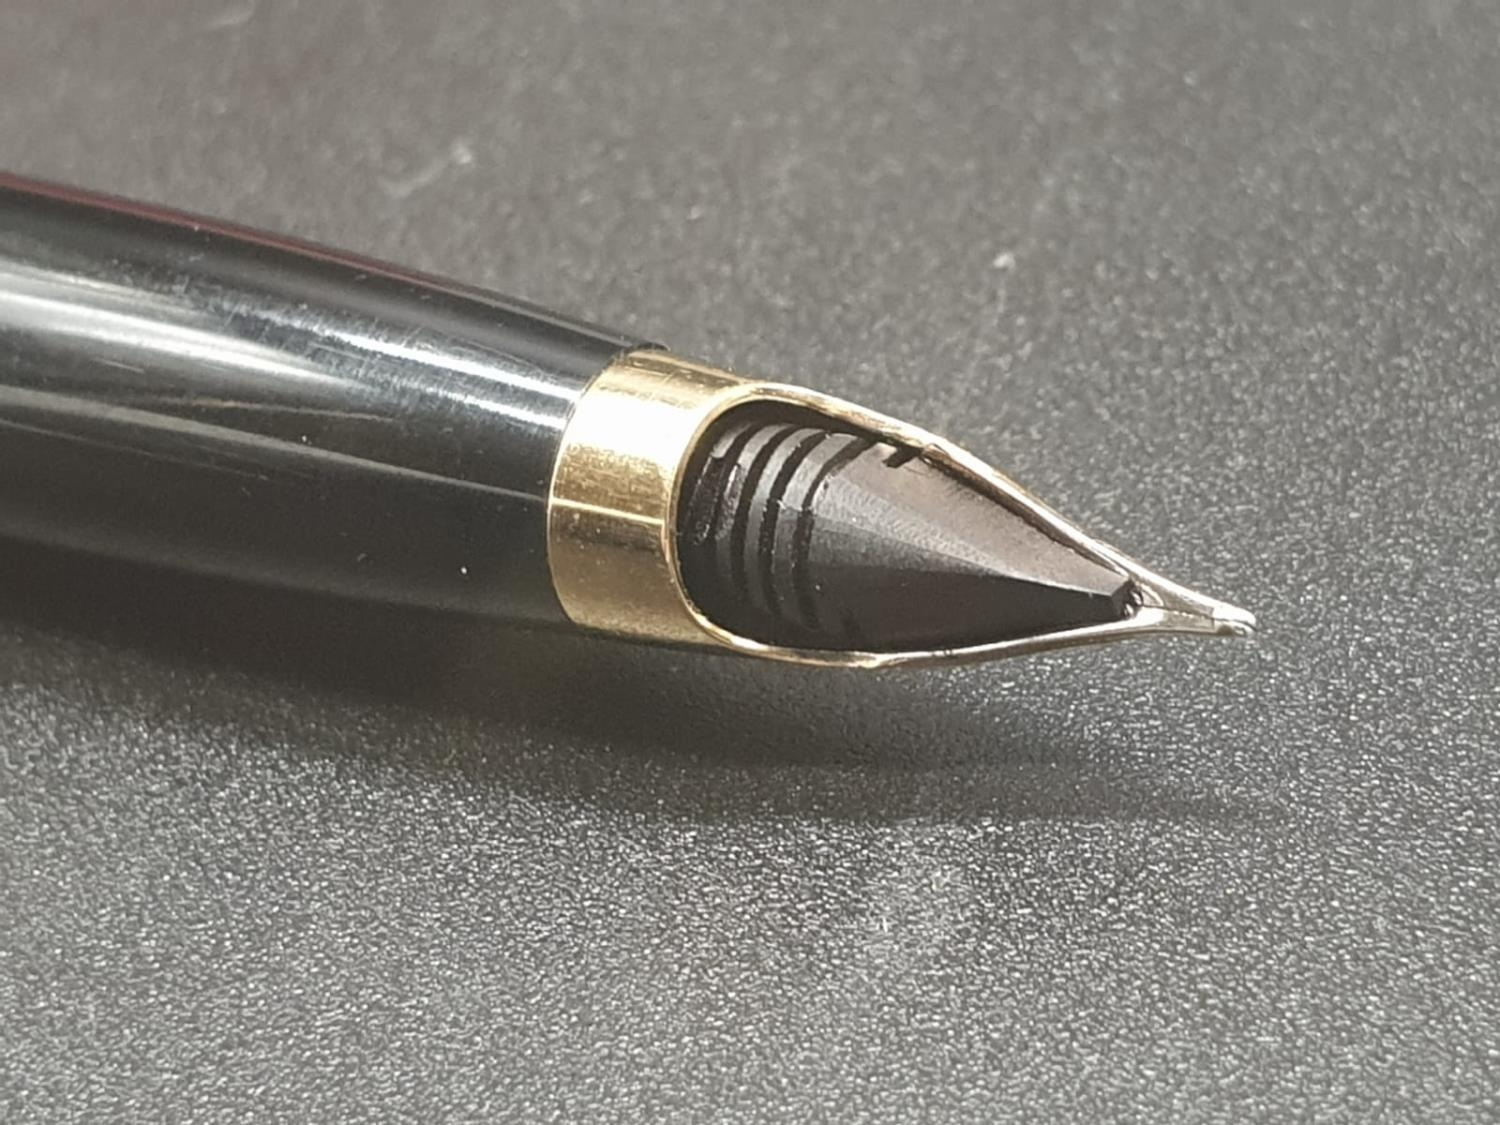 A 60?s vintage Lady Sheaffer fountain pen and mechanical pencil in excellent condition, in the - Image 6 of 11